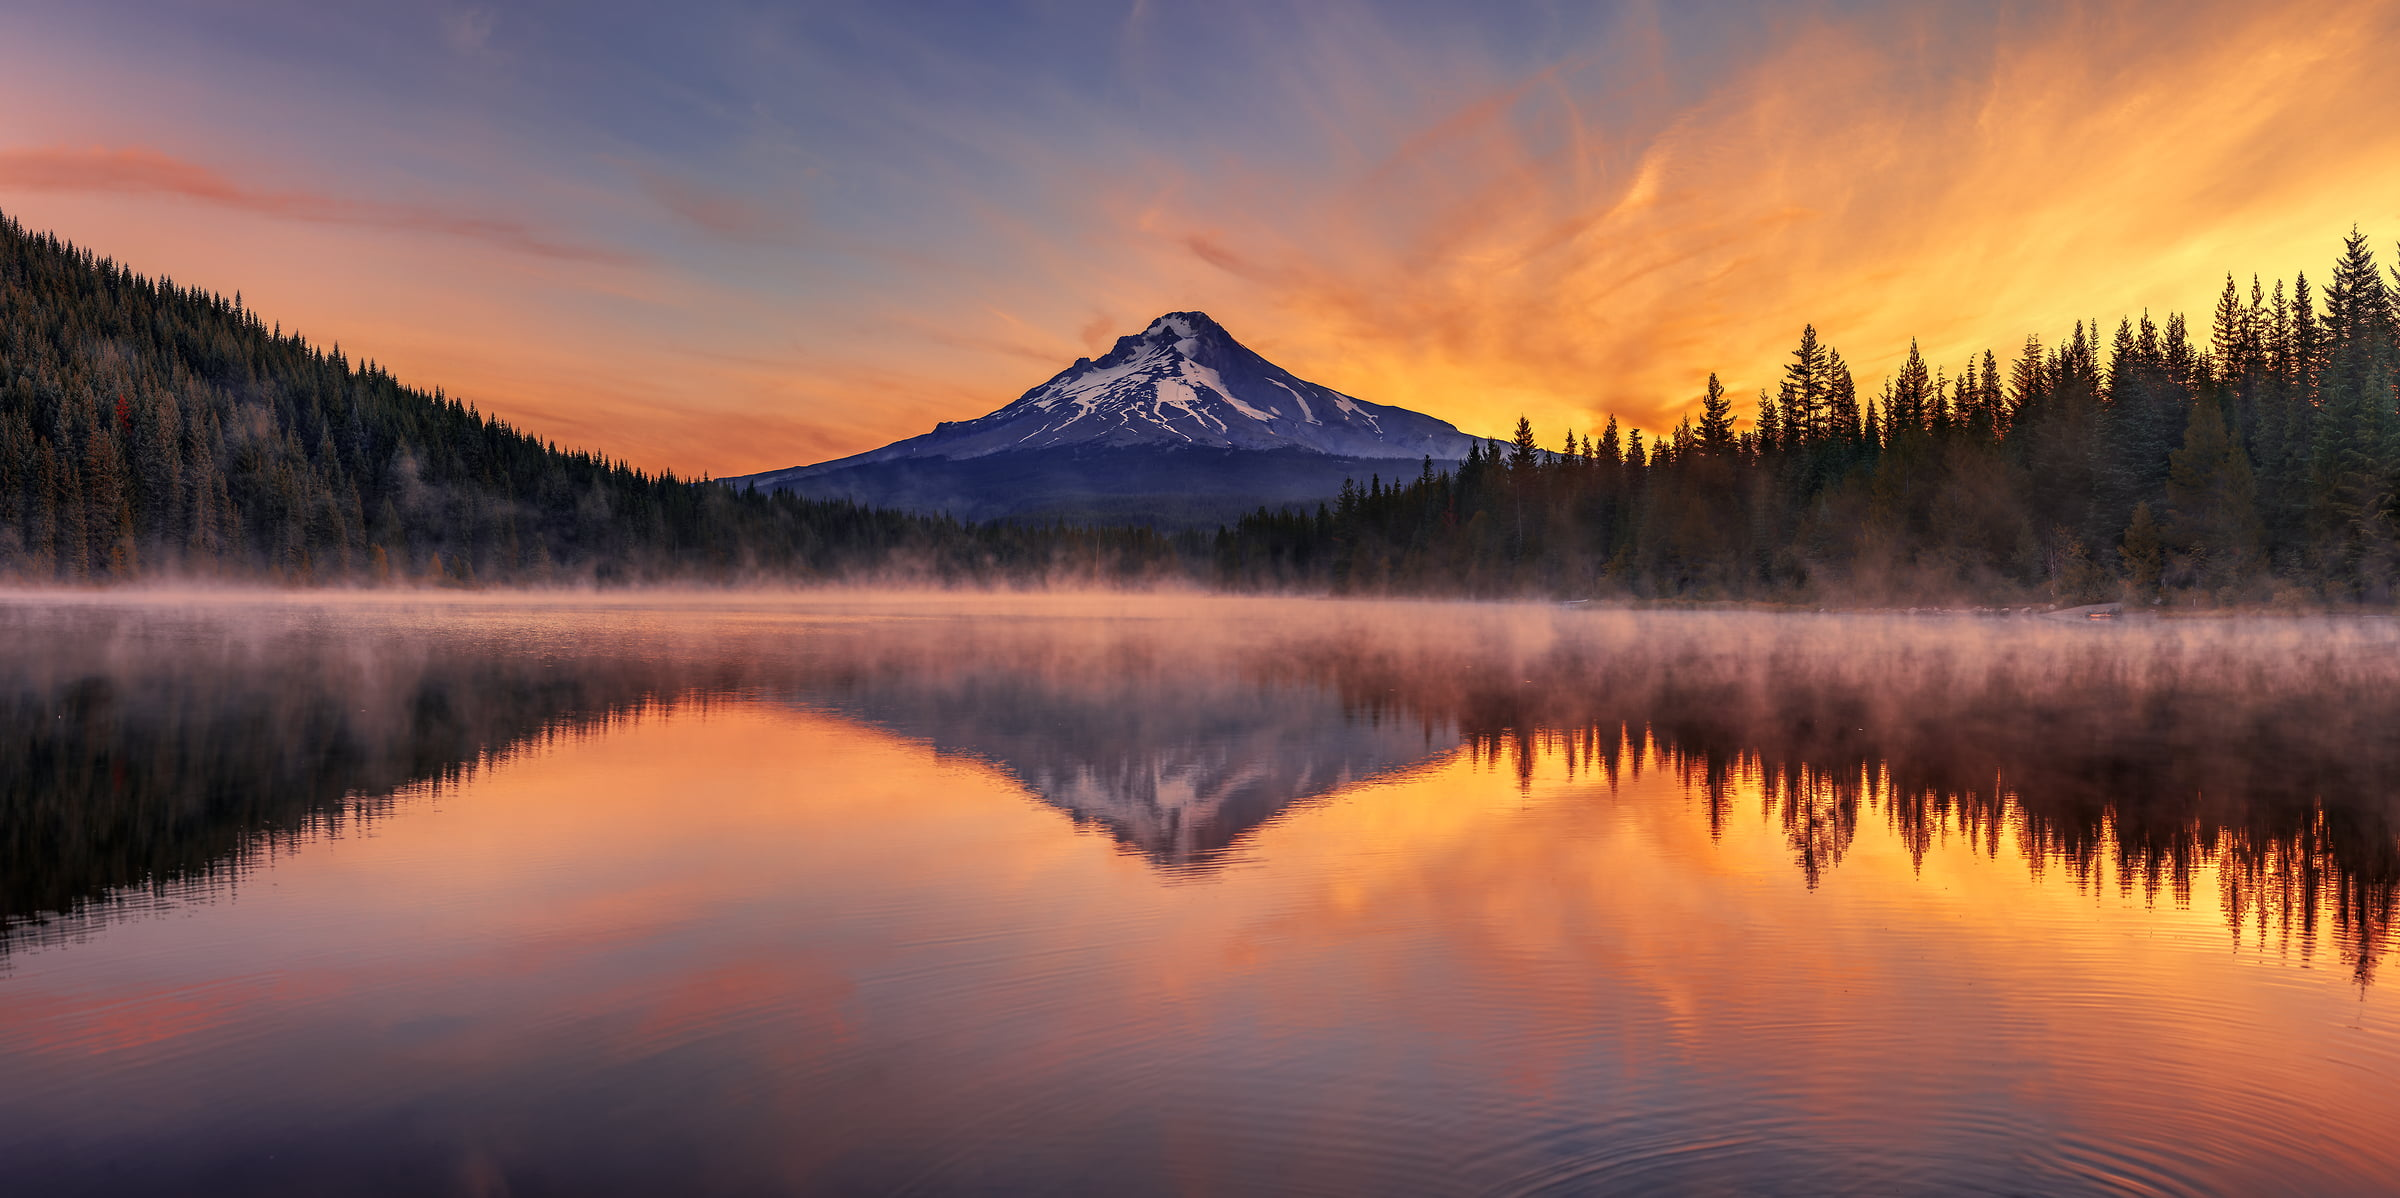 391 megapixels! A very high resolution, large-format VAST photo print of a beautiful landscape; photograph created by Chris Collacott in Trillium Lake, Oregon